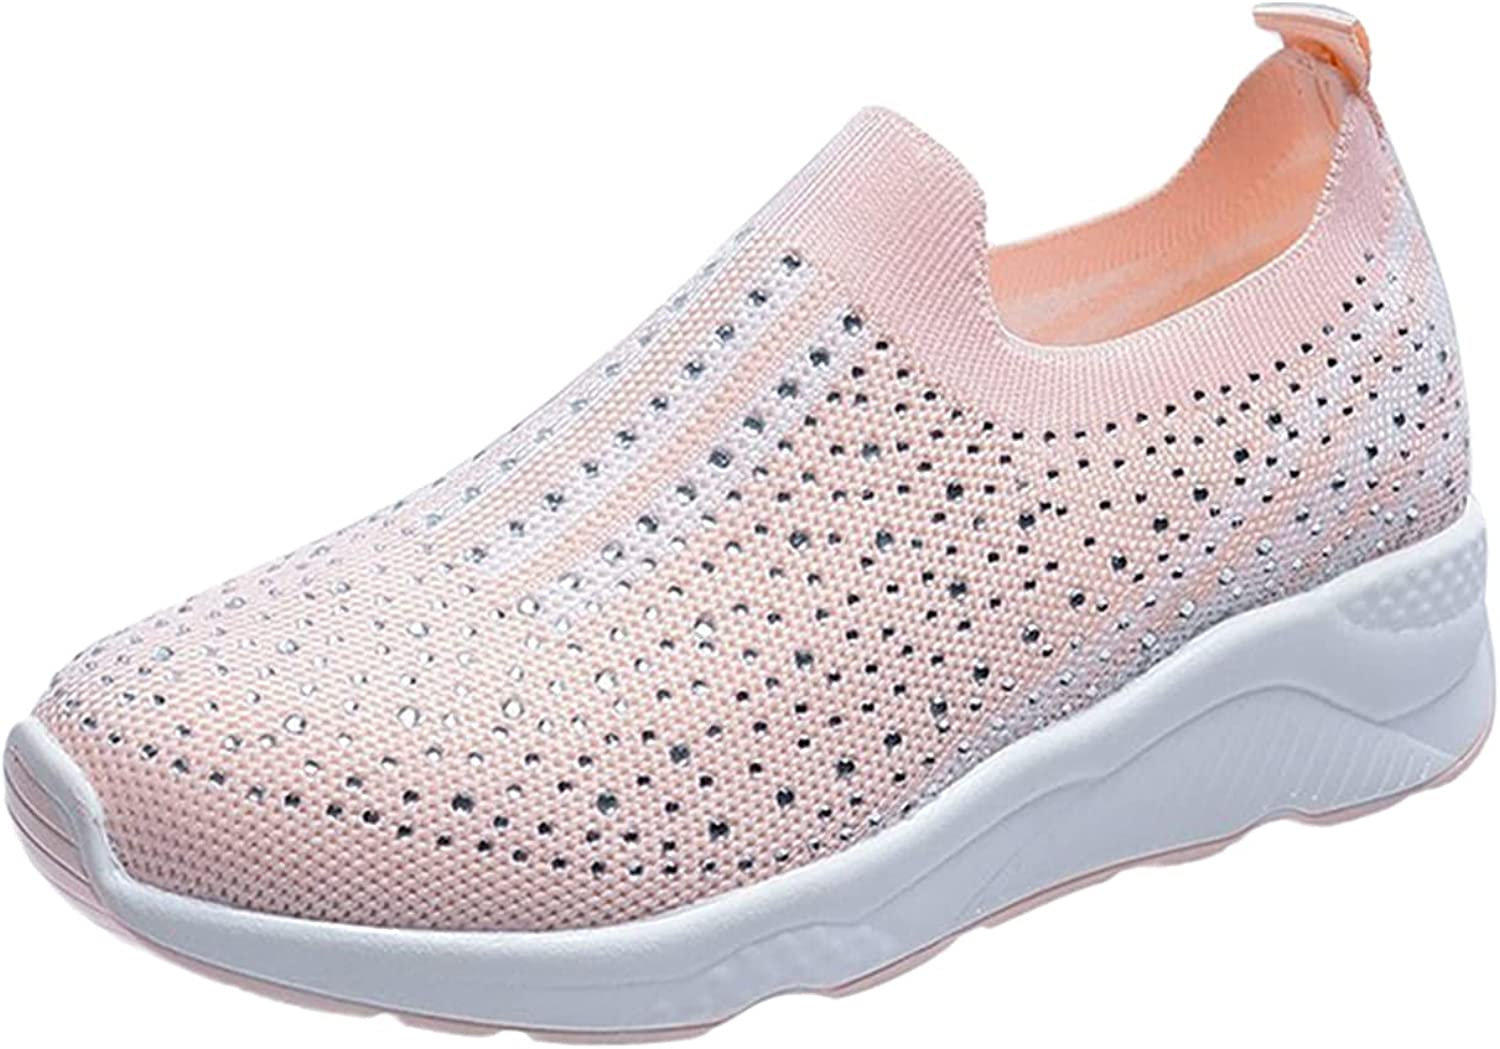 Floral Embroidered Shoes for Women Comfortable Round Toe Loafer Casual Ballet Flats Tenis para Mujeres Female Grandmother Shoes